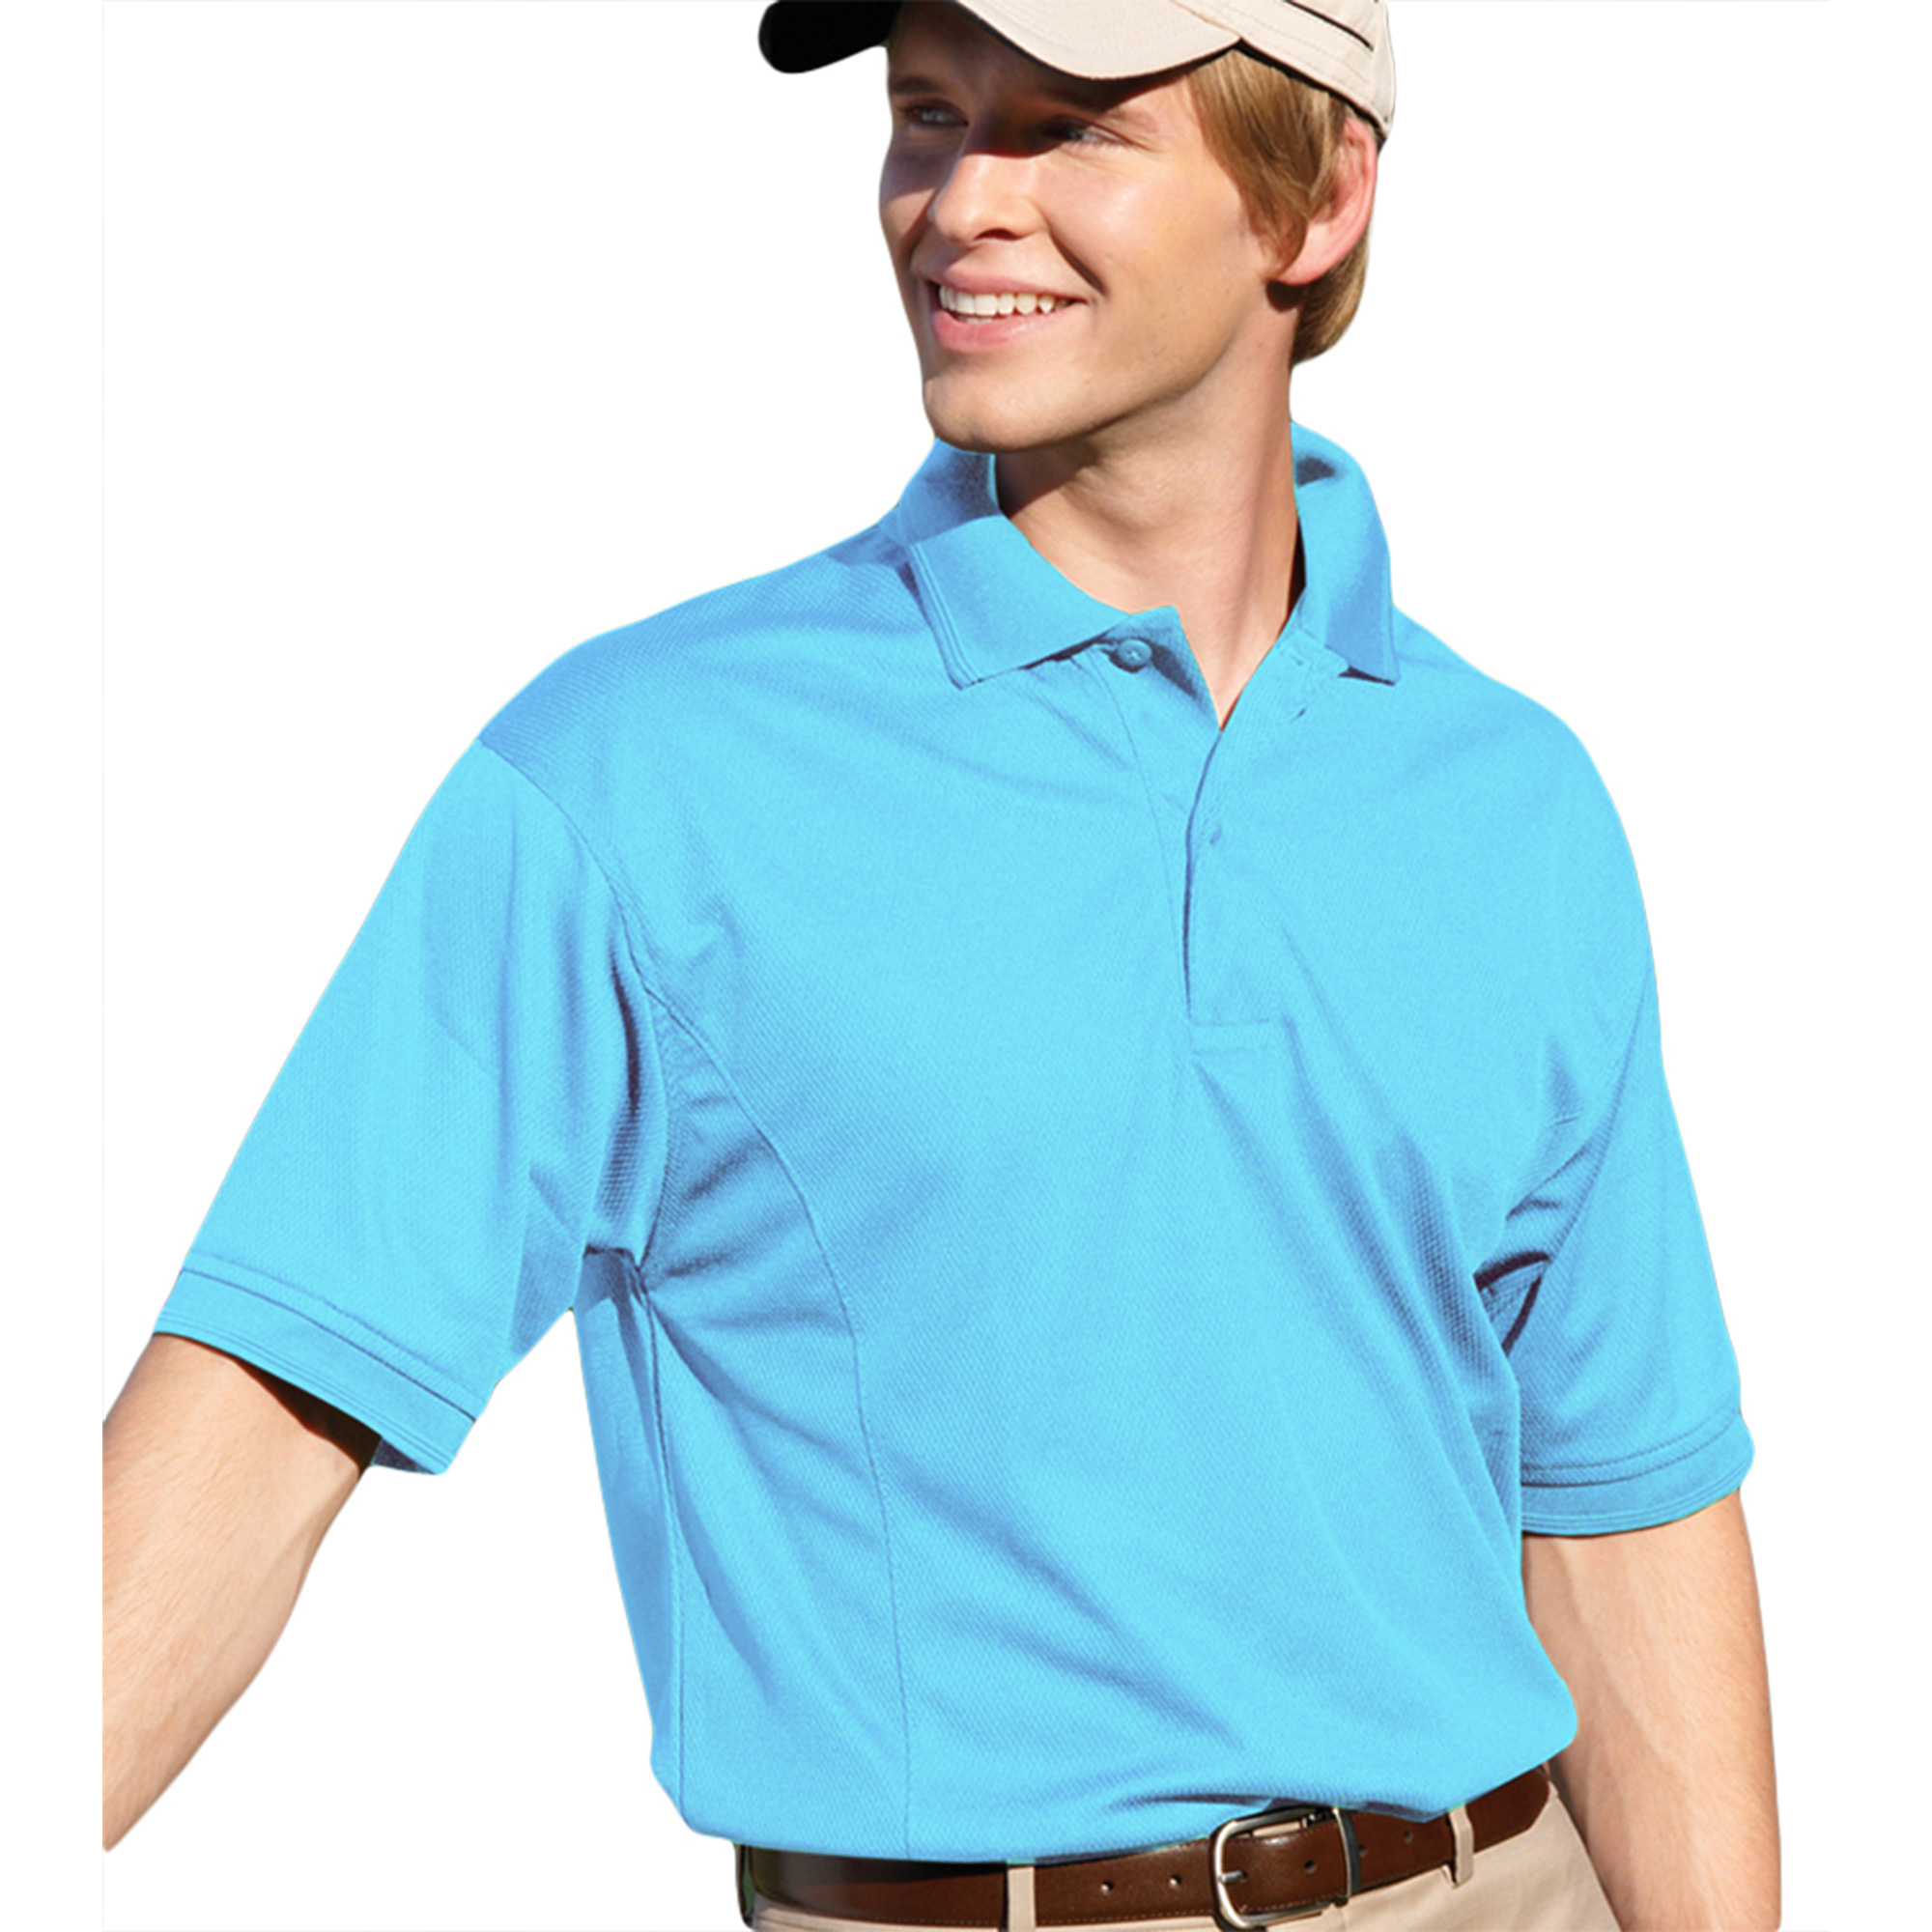 00820599180750 MENS PERFORMANCE GOLF SHIRT 2800 AQUA M